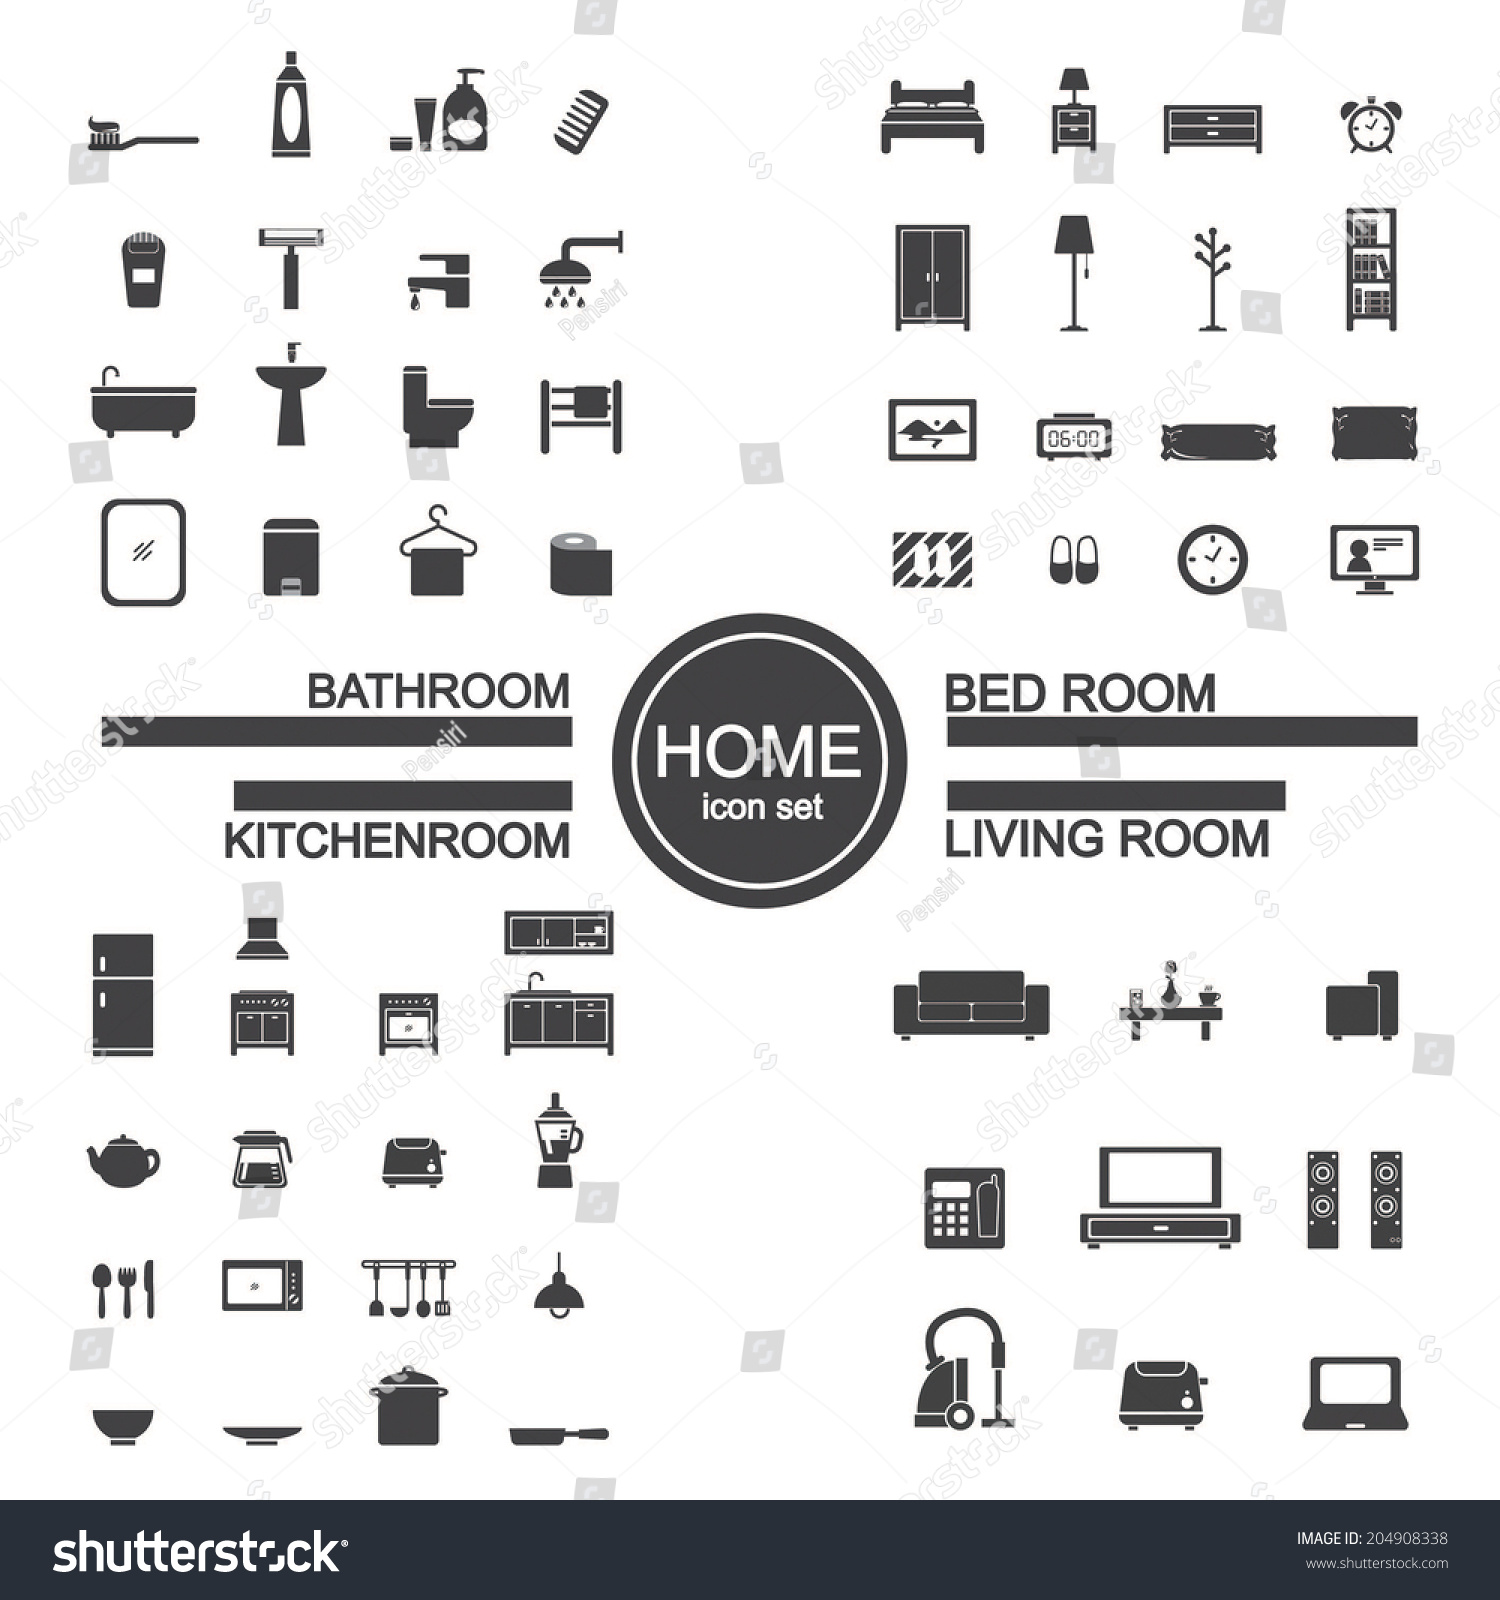 Most accurate bathroom scale 2014 - Living Room Bedroom Kitchen Bathroom Icon Set Living Room Bedroom Kitchen Bathroom Icon Stock Vector